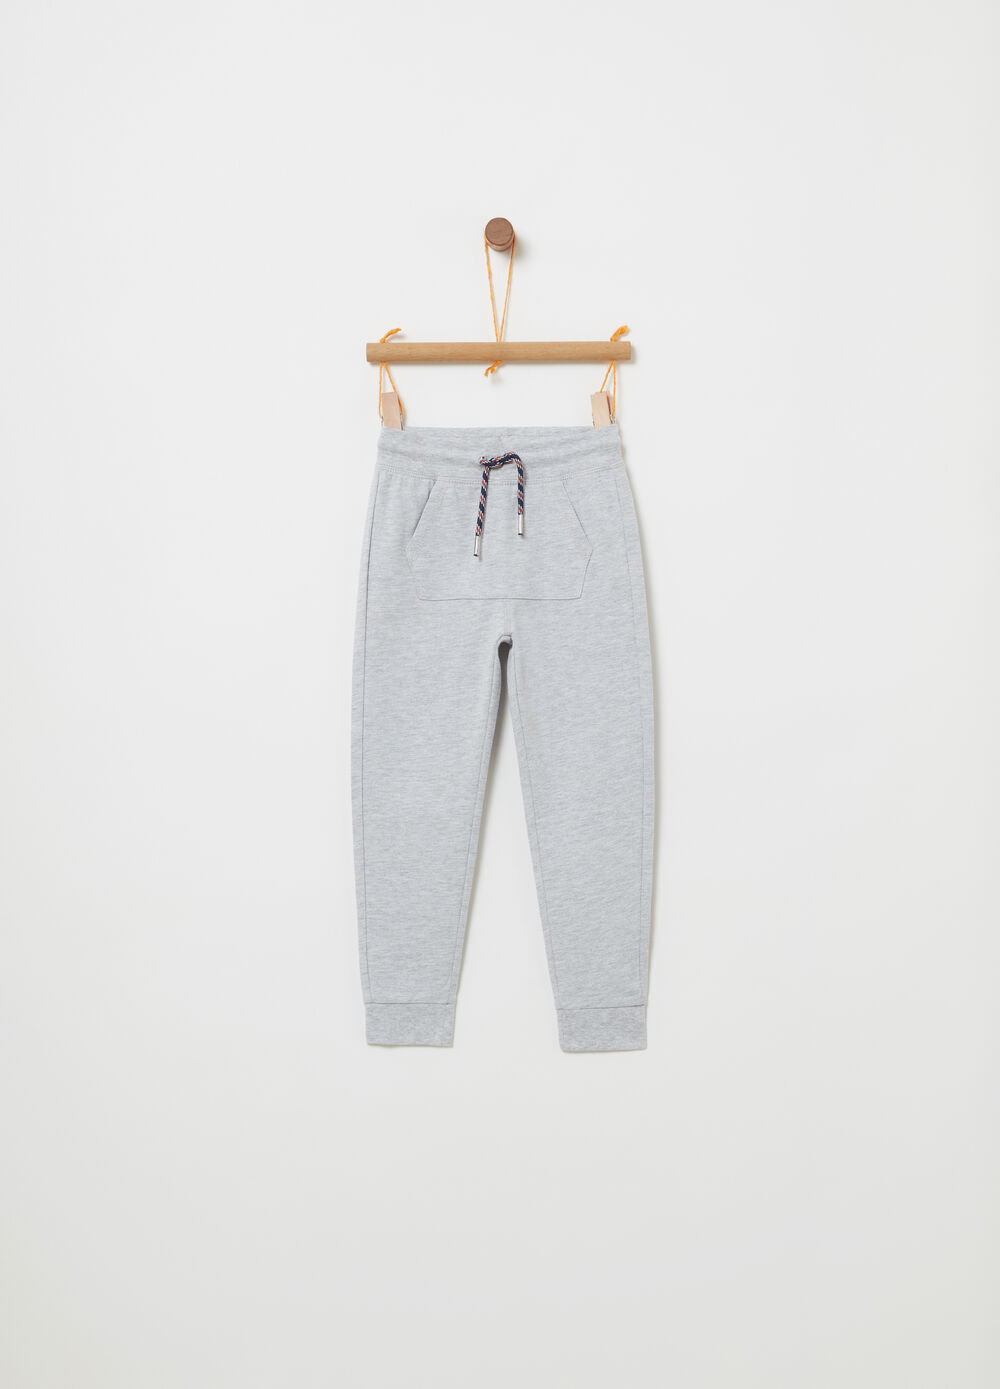 BCI cotton trousers with drawstring waist